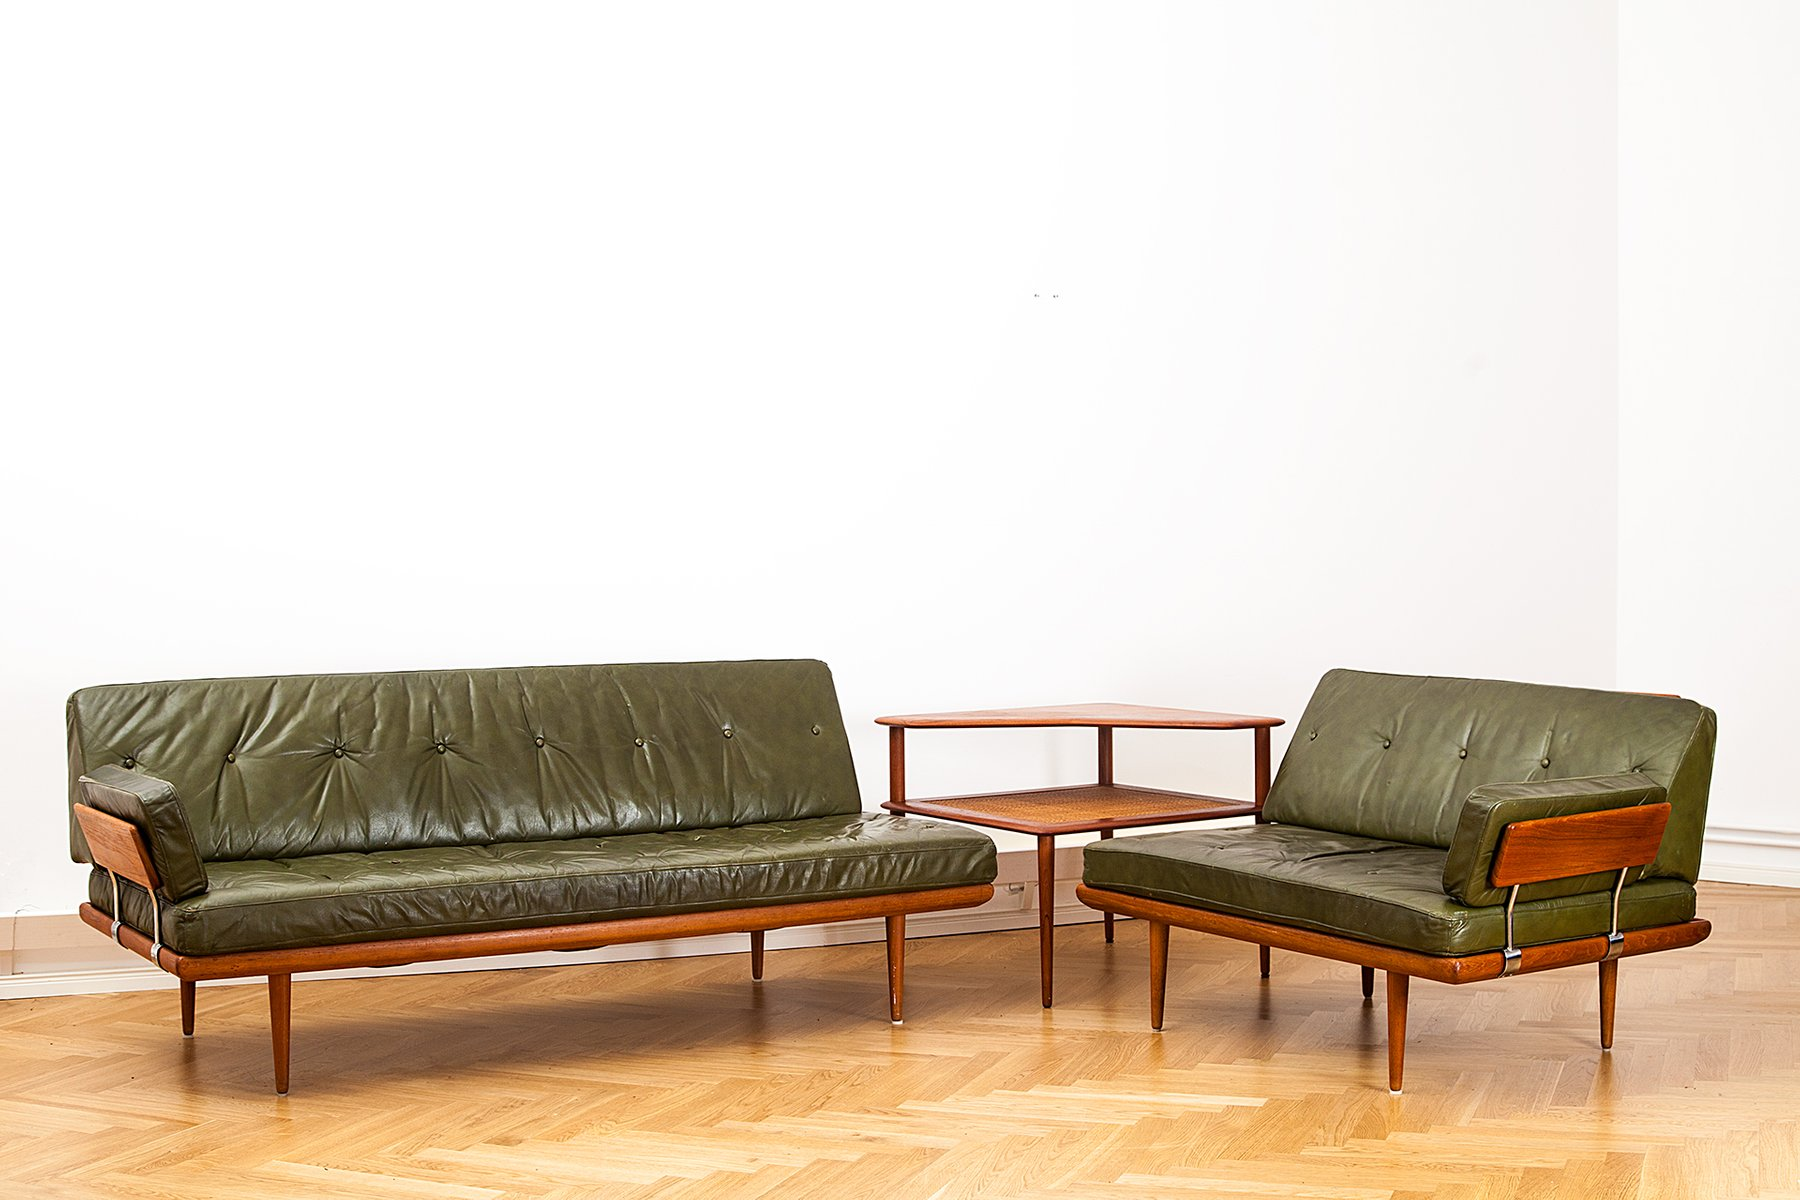 Danish MidCentury Minerva Leather Living Room Set by Peter Hvidt